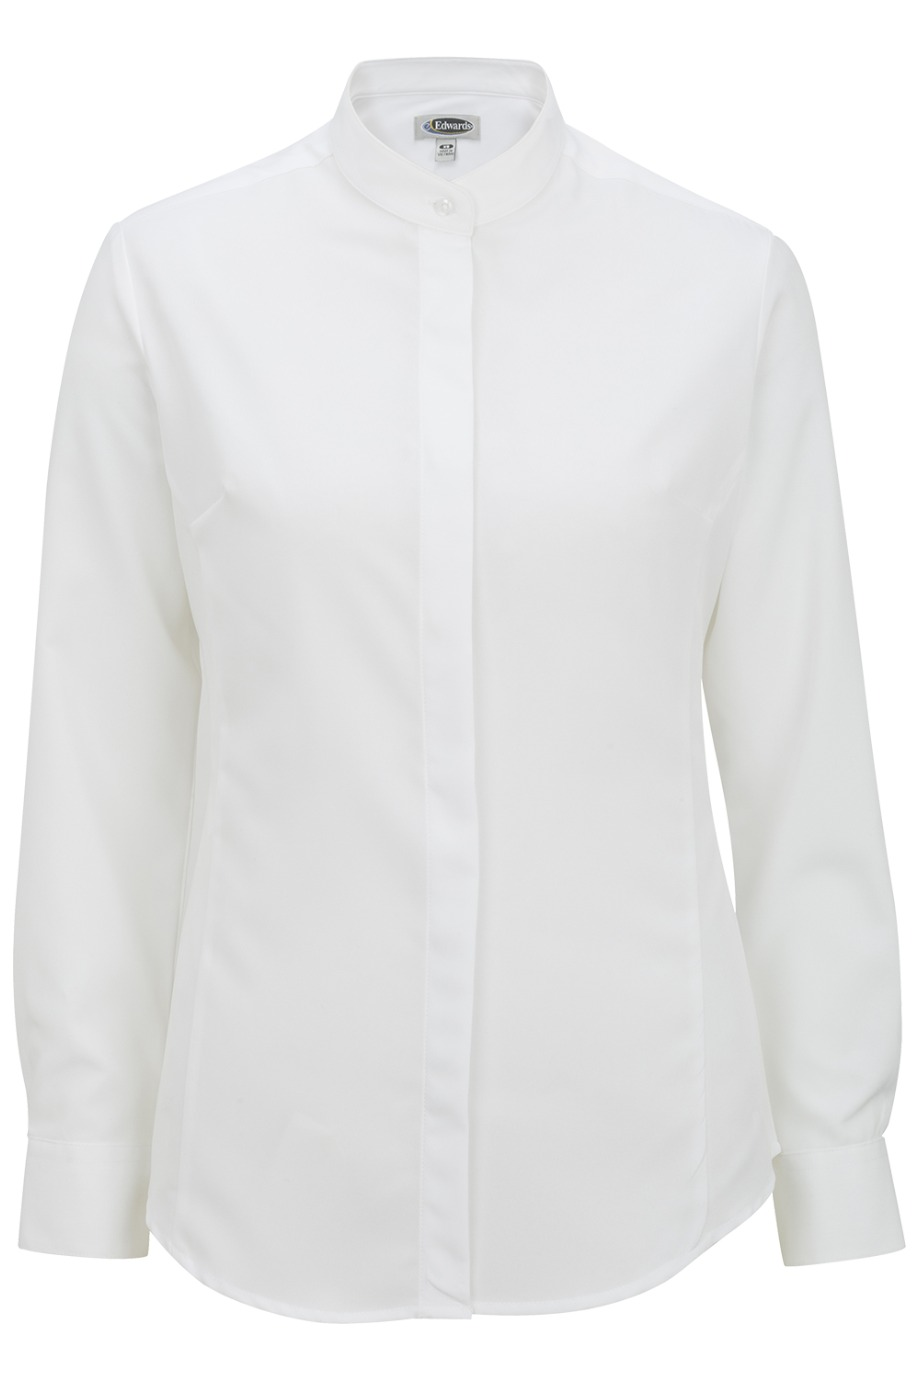 Edwards Garment 5392 - Ladies Batiste Banded Collar ...